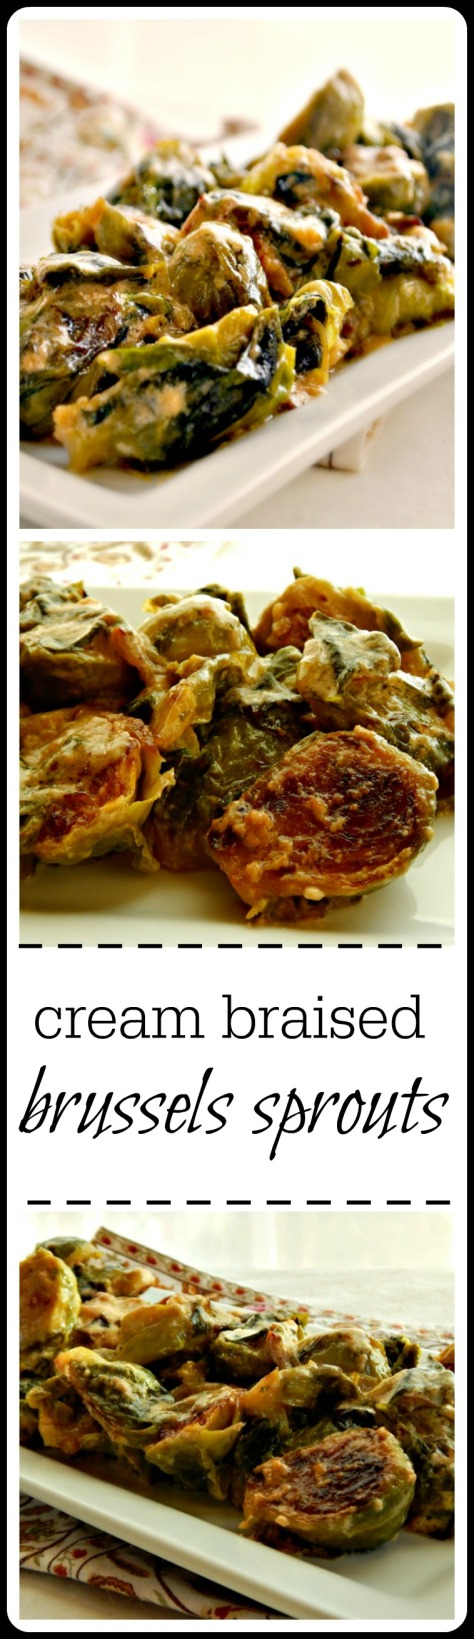 Cream Braised Brussels - they're absolutely terrific - talk about creamy, sweet, caramelized deliciousness!